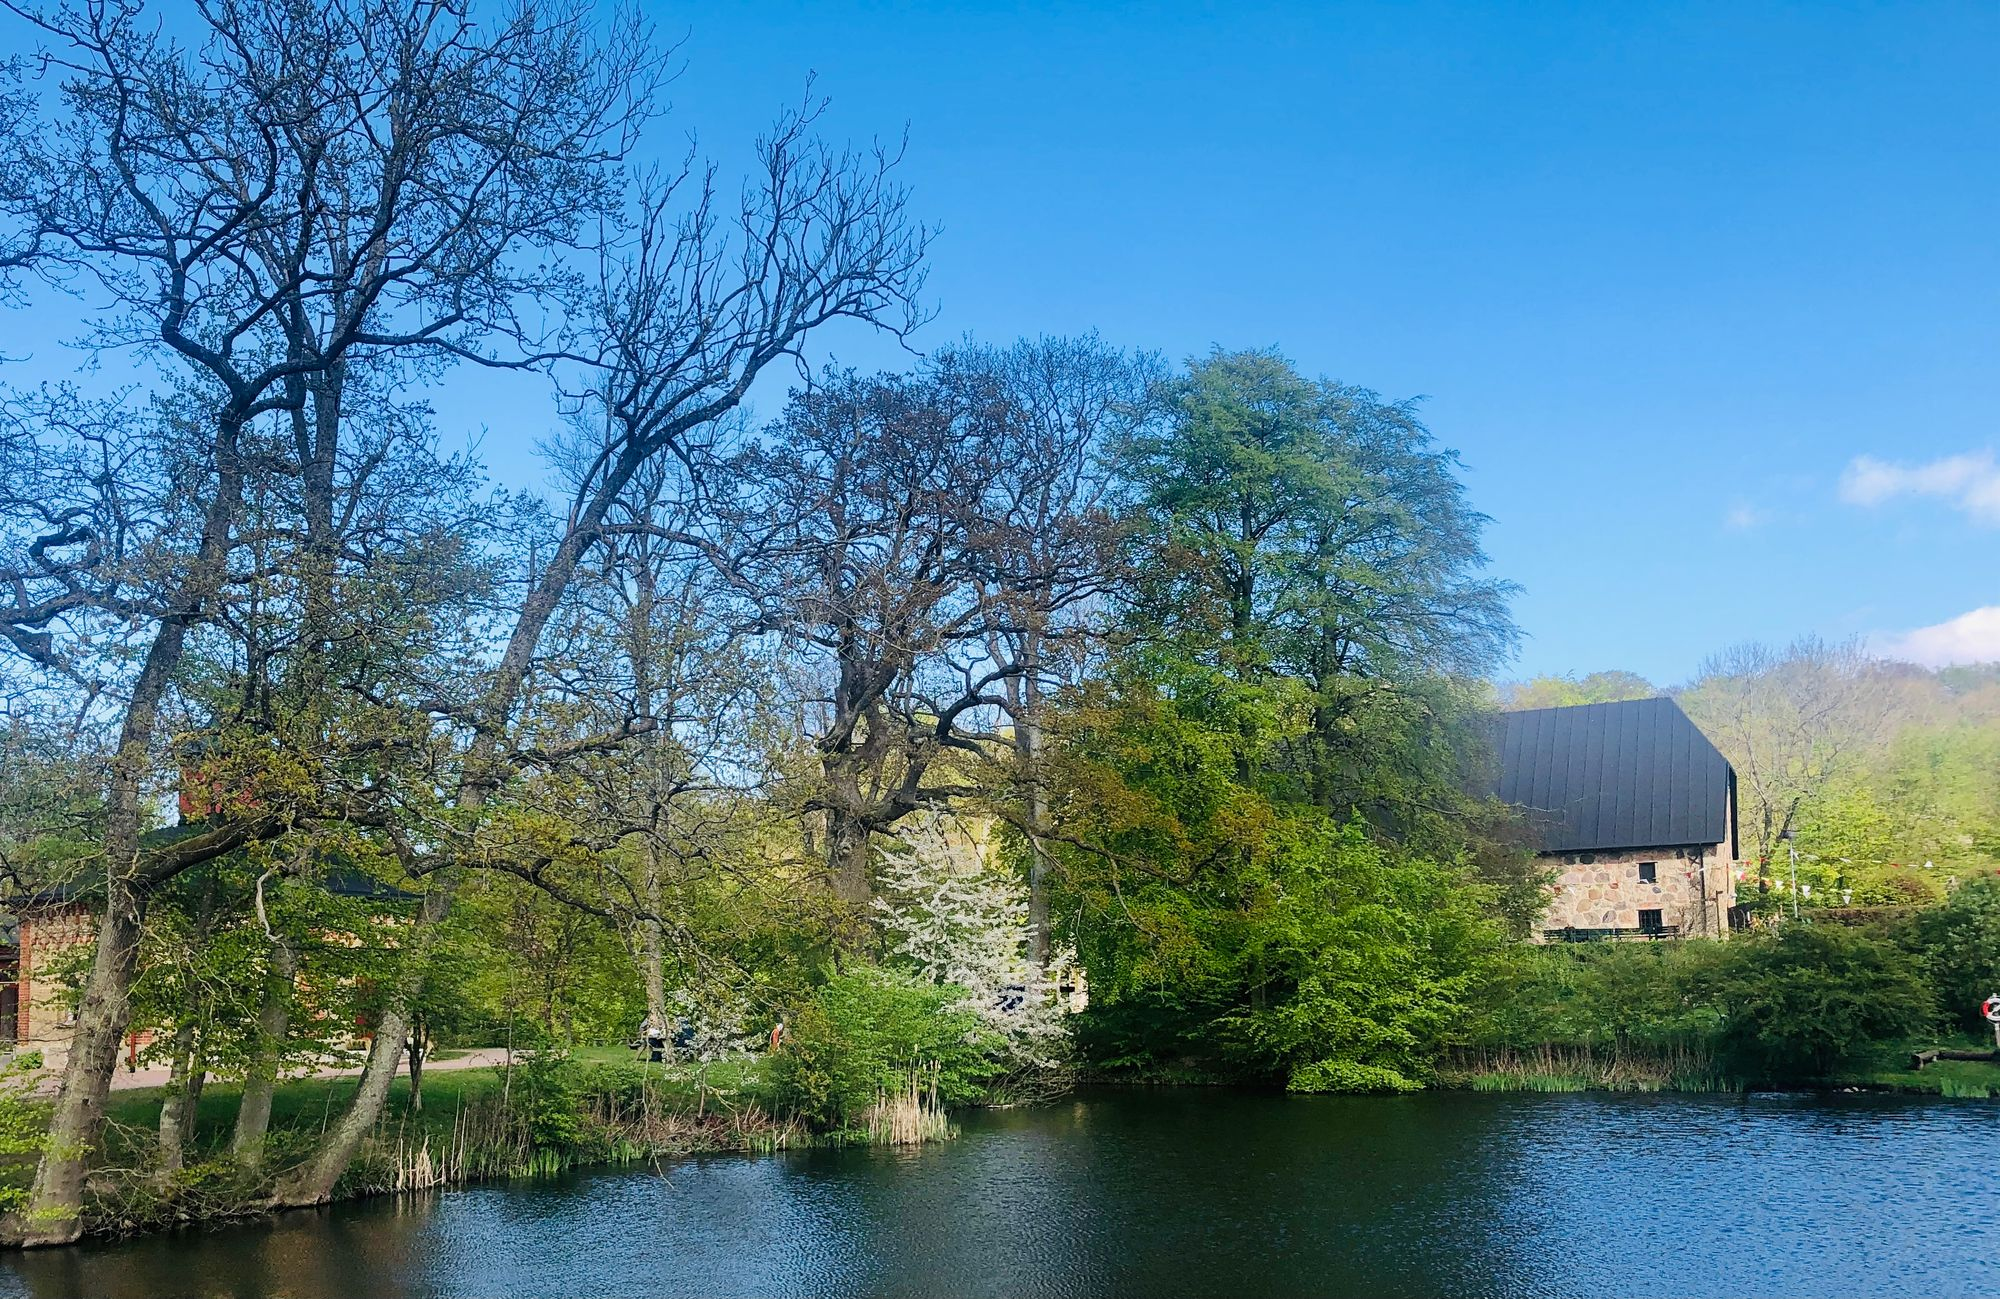 Scenic landscape with a small lake, trees and old buildings.